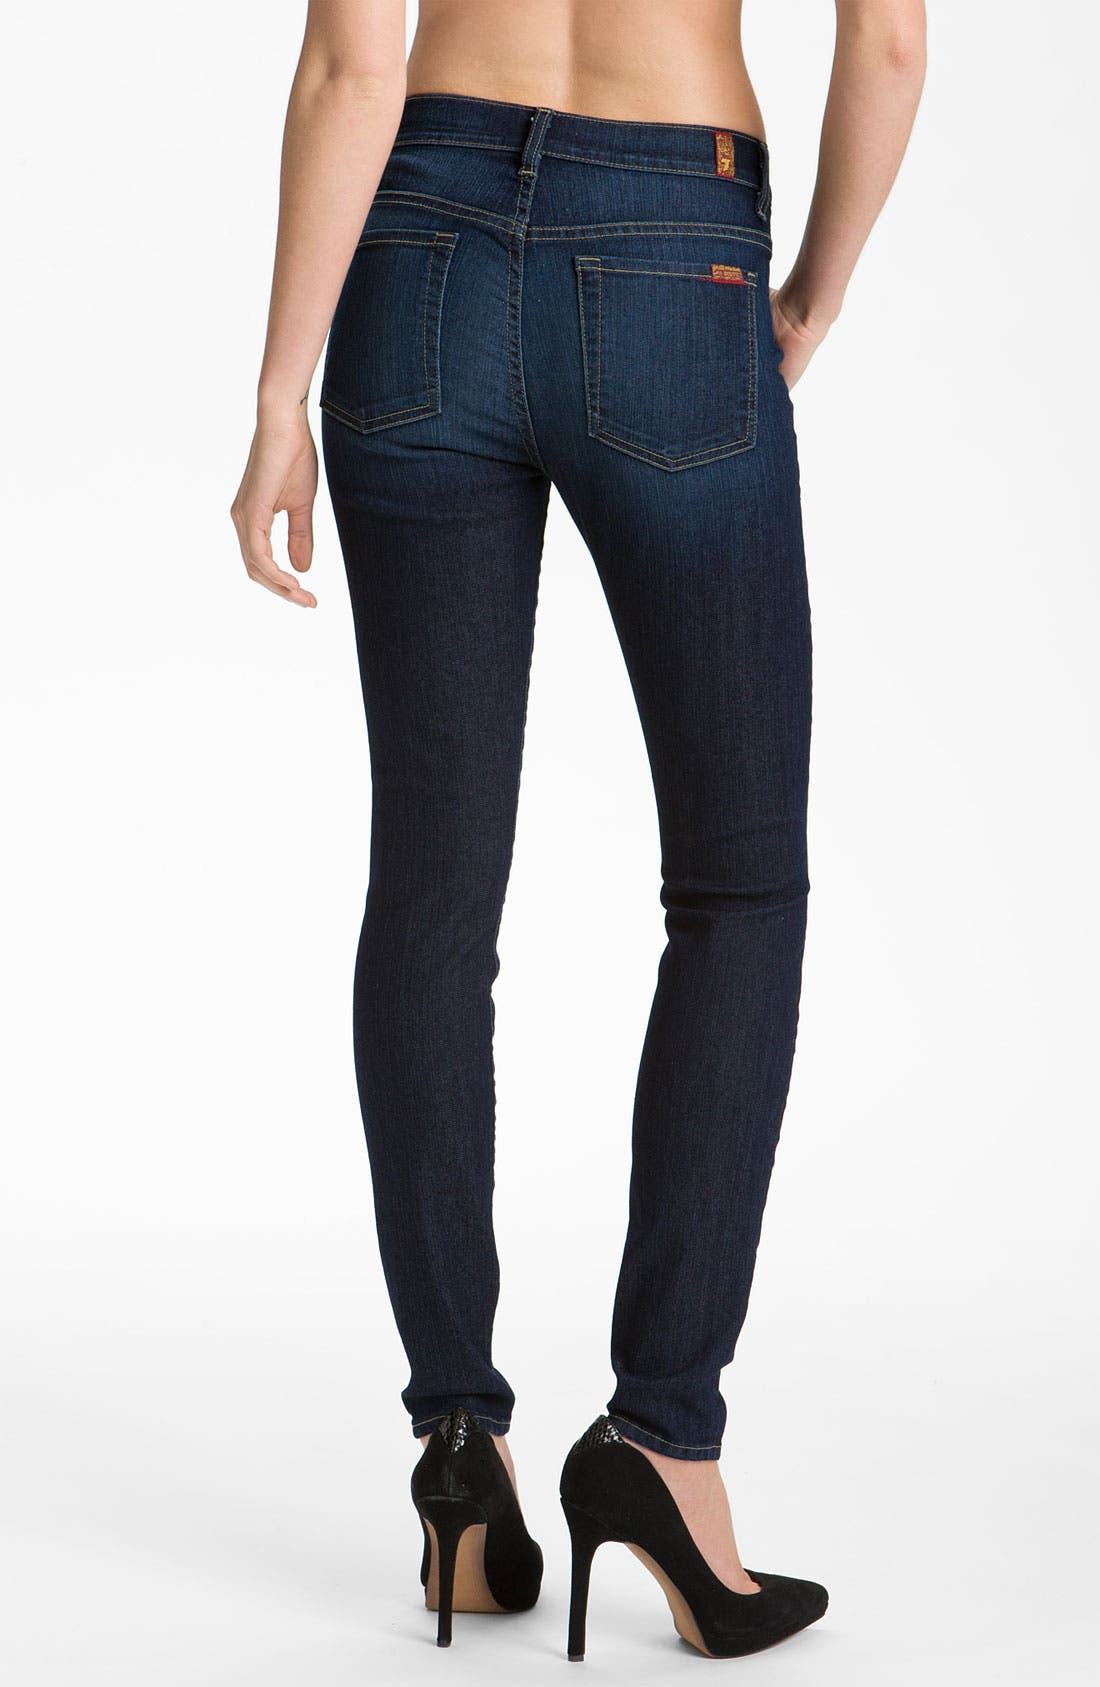 Alternate Image 2  - 7 For All Mankind® 'The Skinny' Stretch Jeans (Rich Warm Blue) (Online Exclusive)